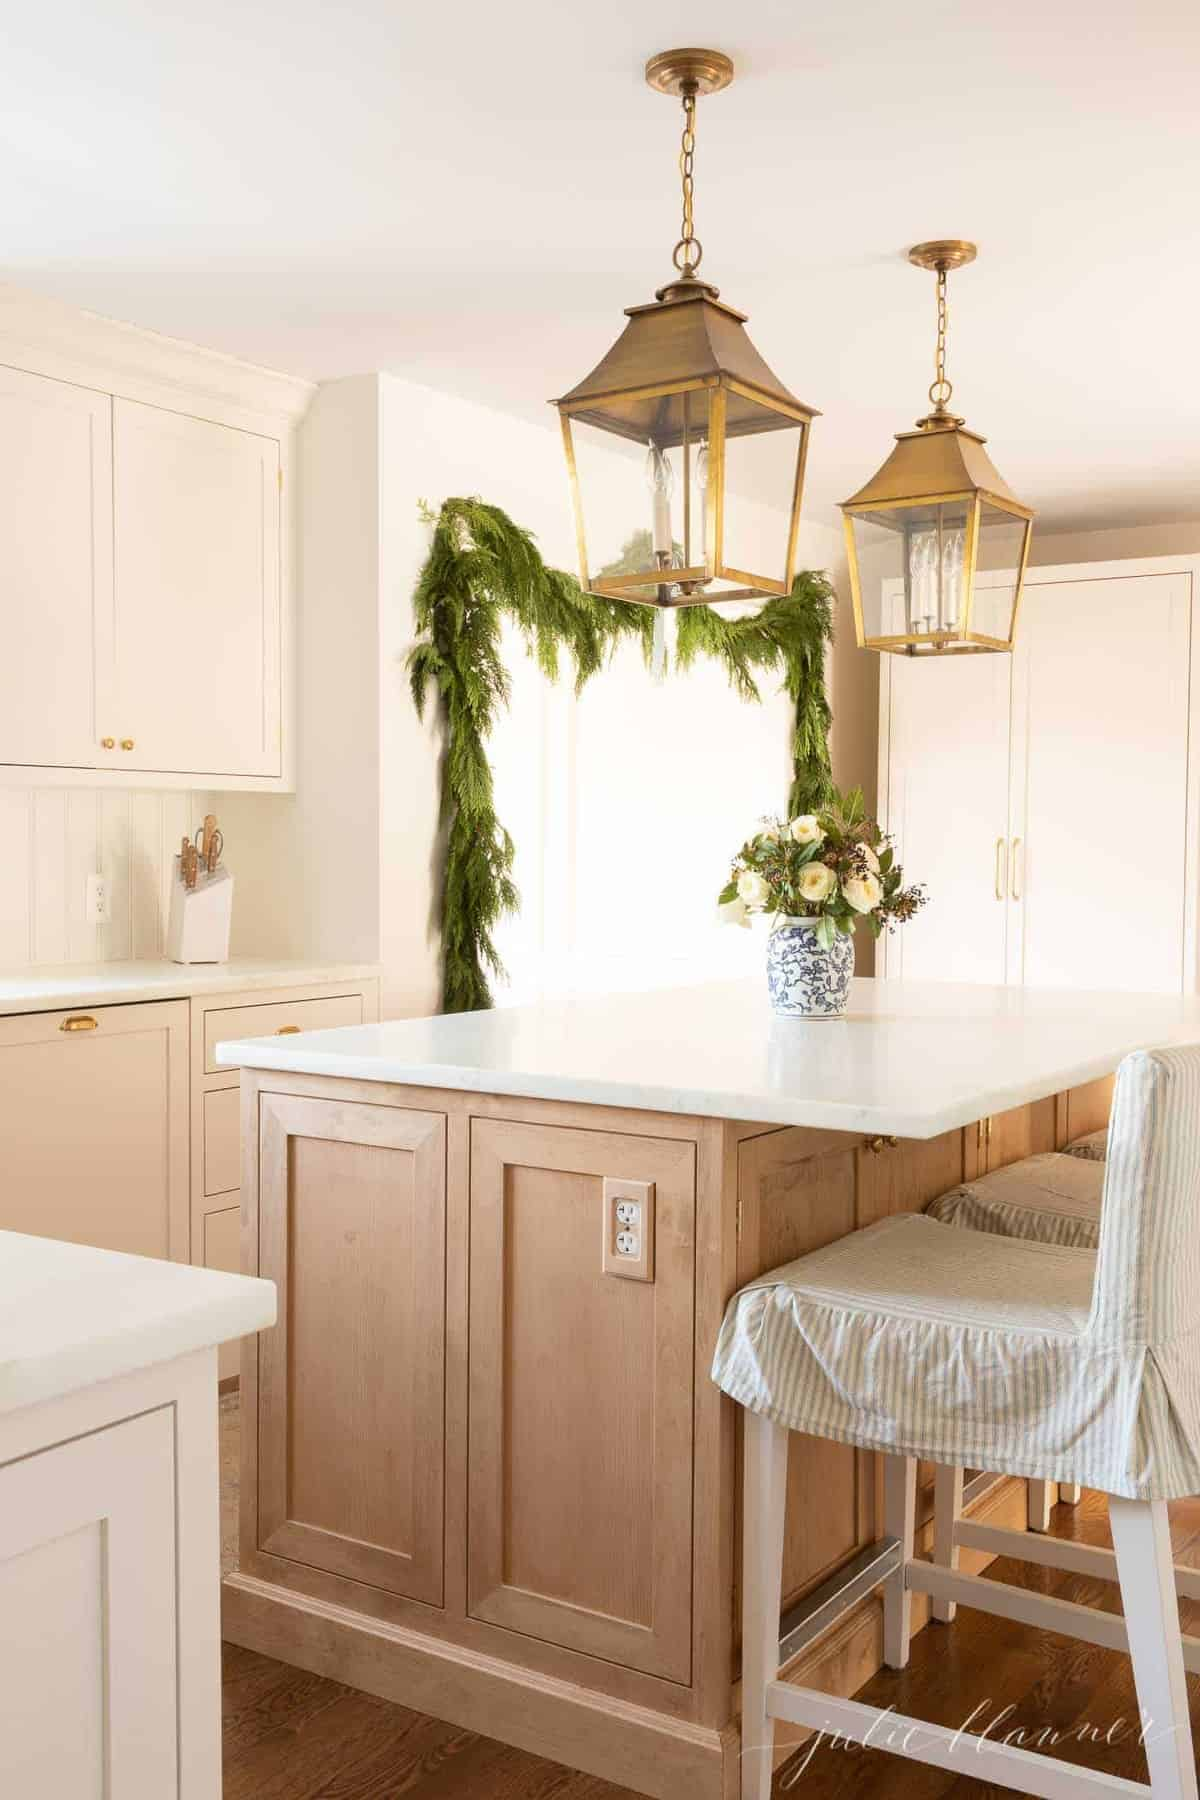 A soft wood island in a cream kitchen decorated with Christmas greenery.